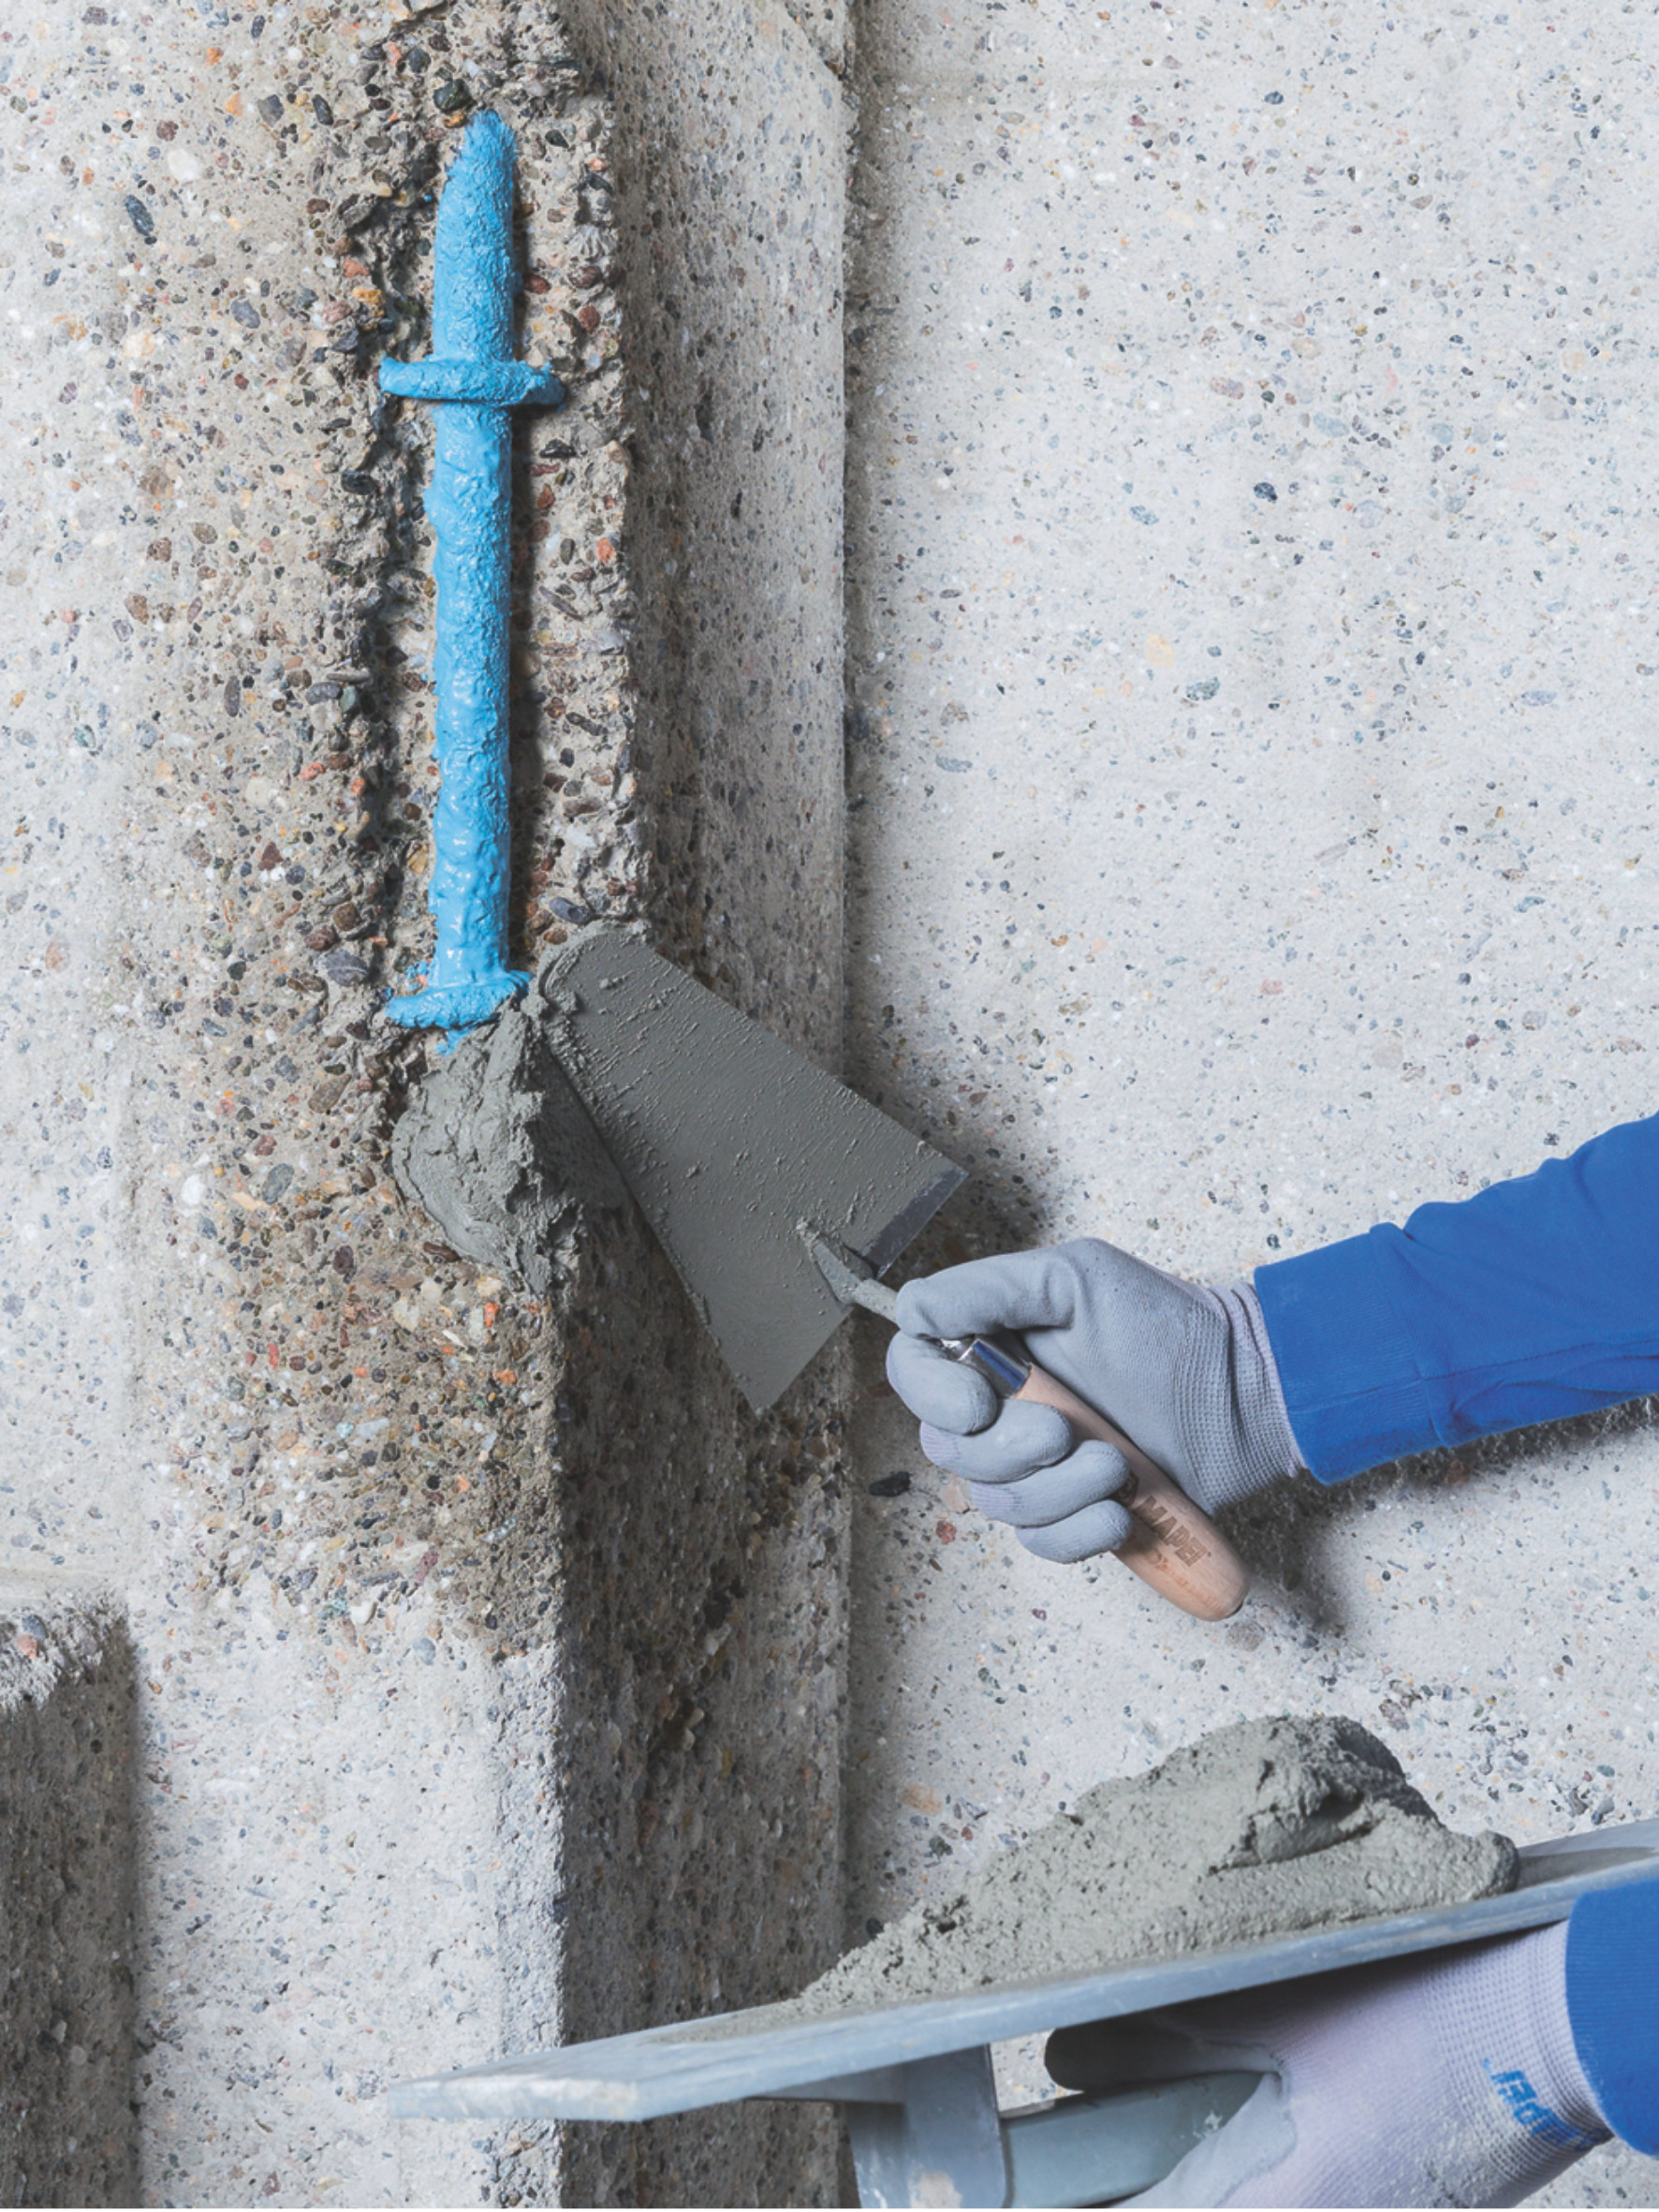 Structural Repairs with MAPEI's Concrete Repair Mortar